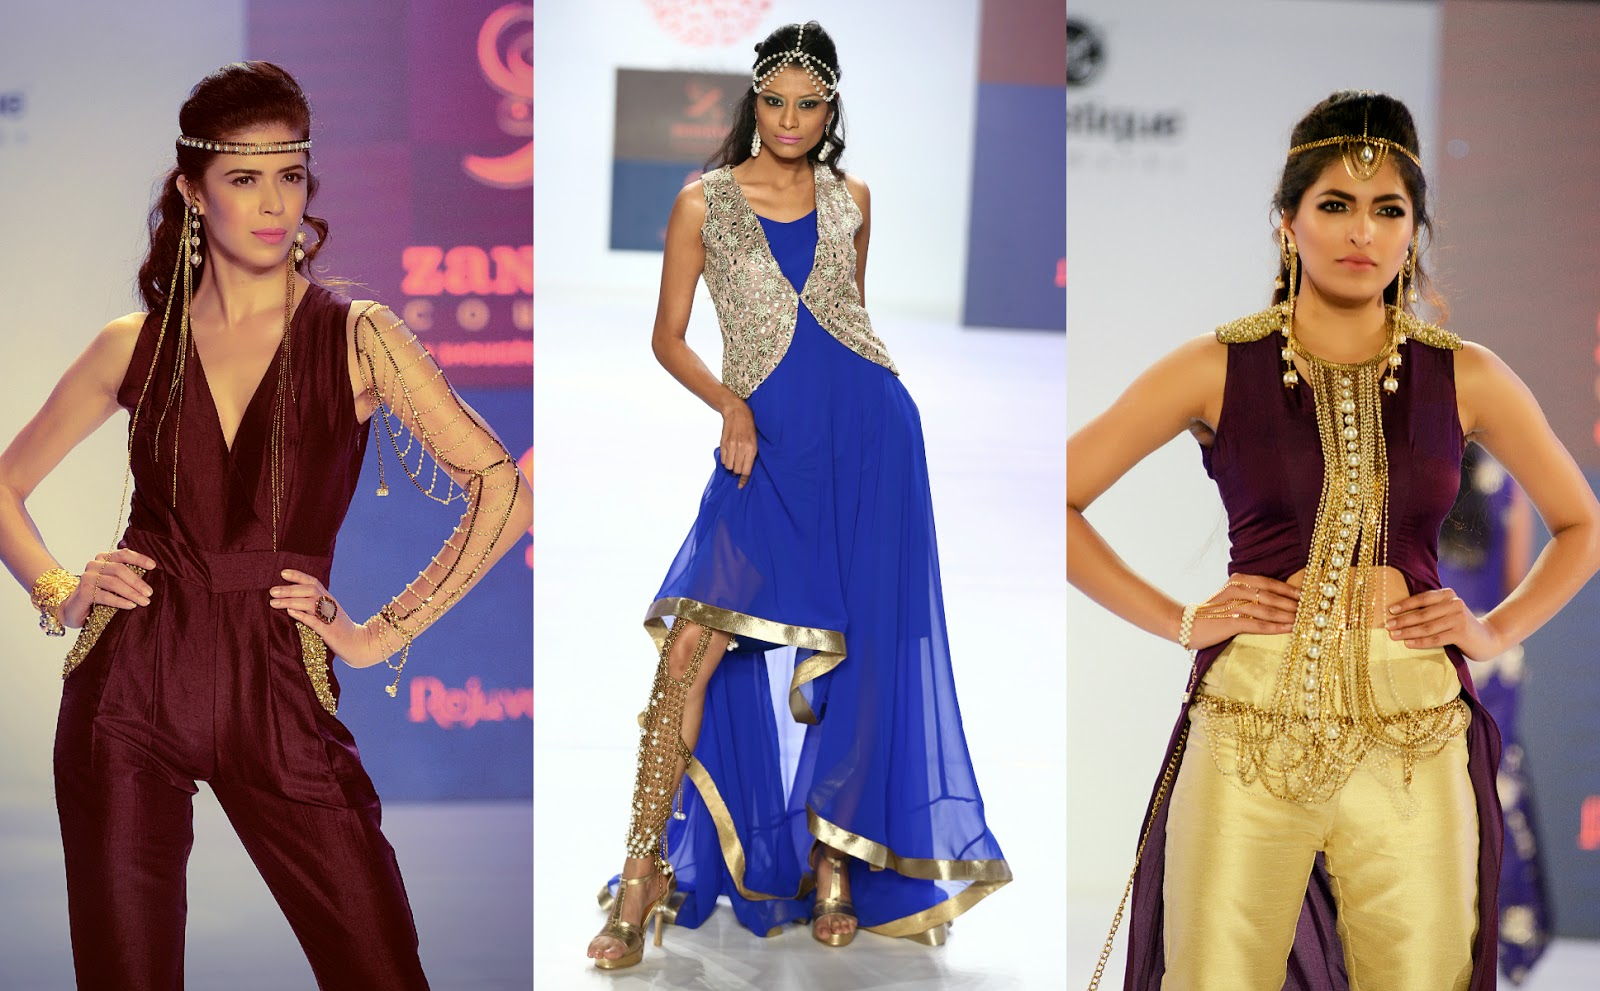 Rejuvenate Jewels at Pune Fashion Week